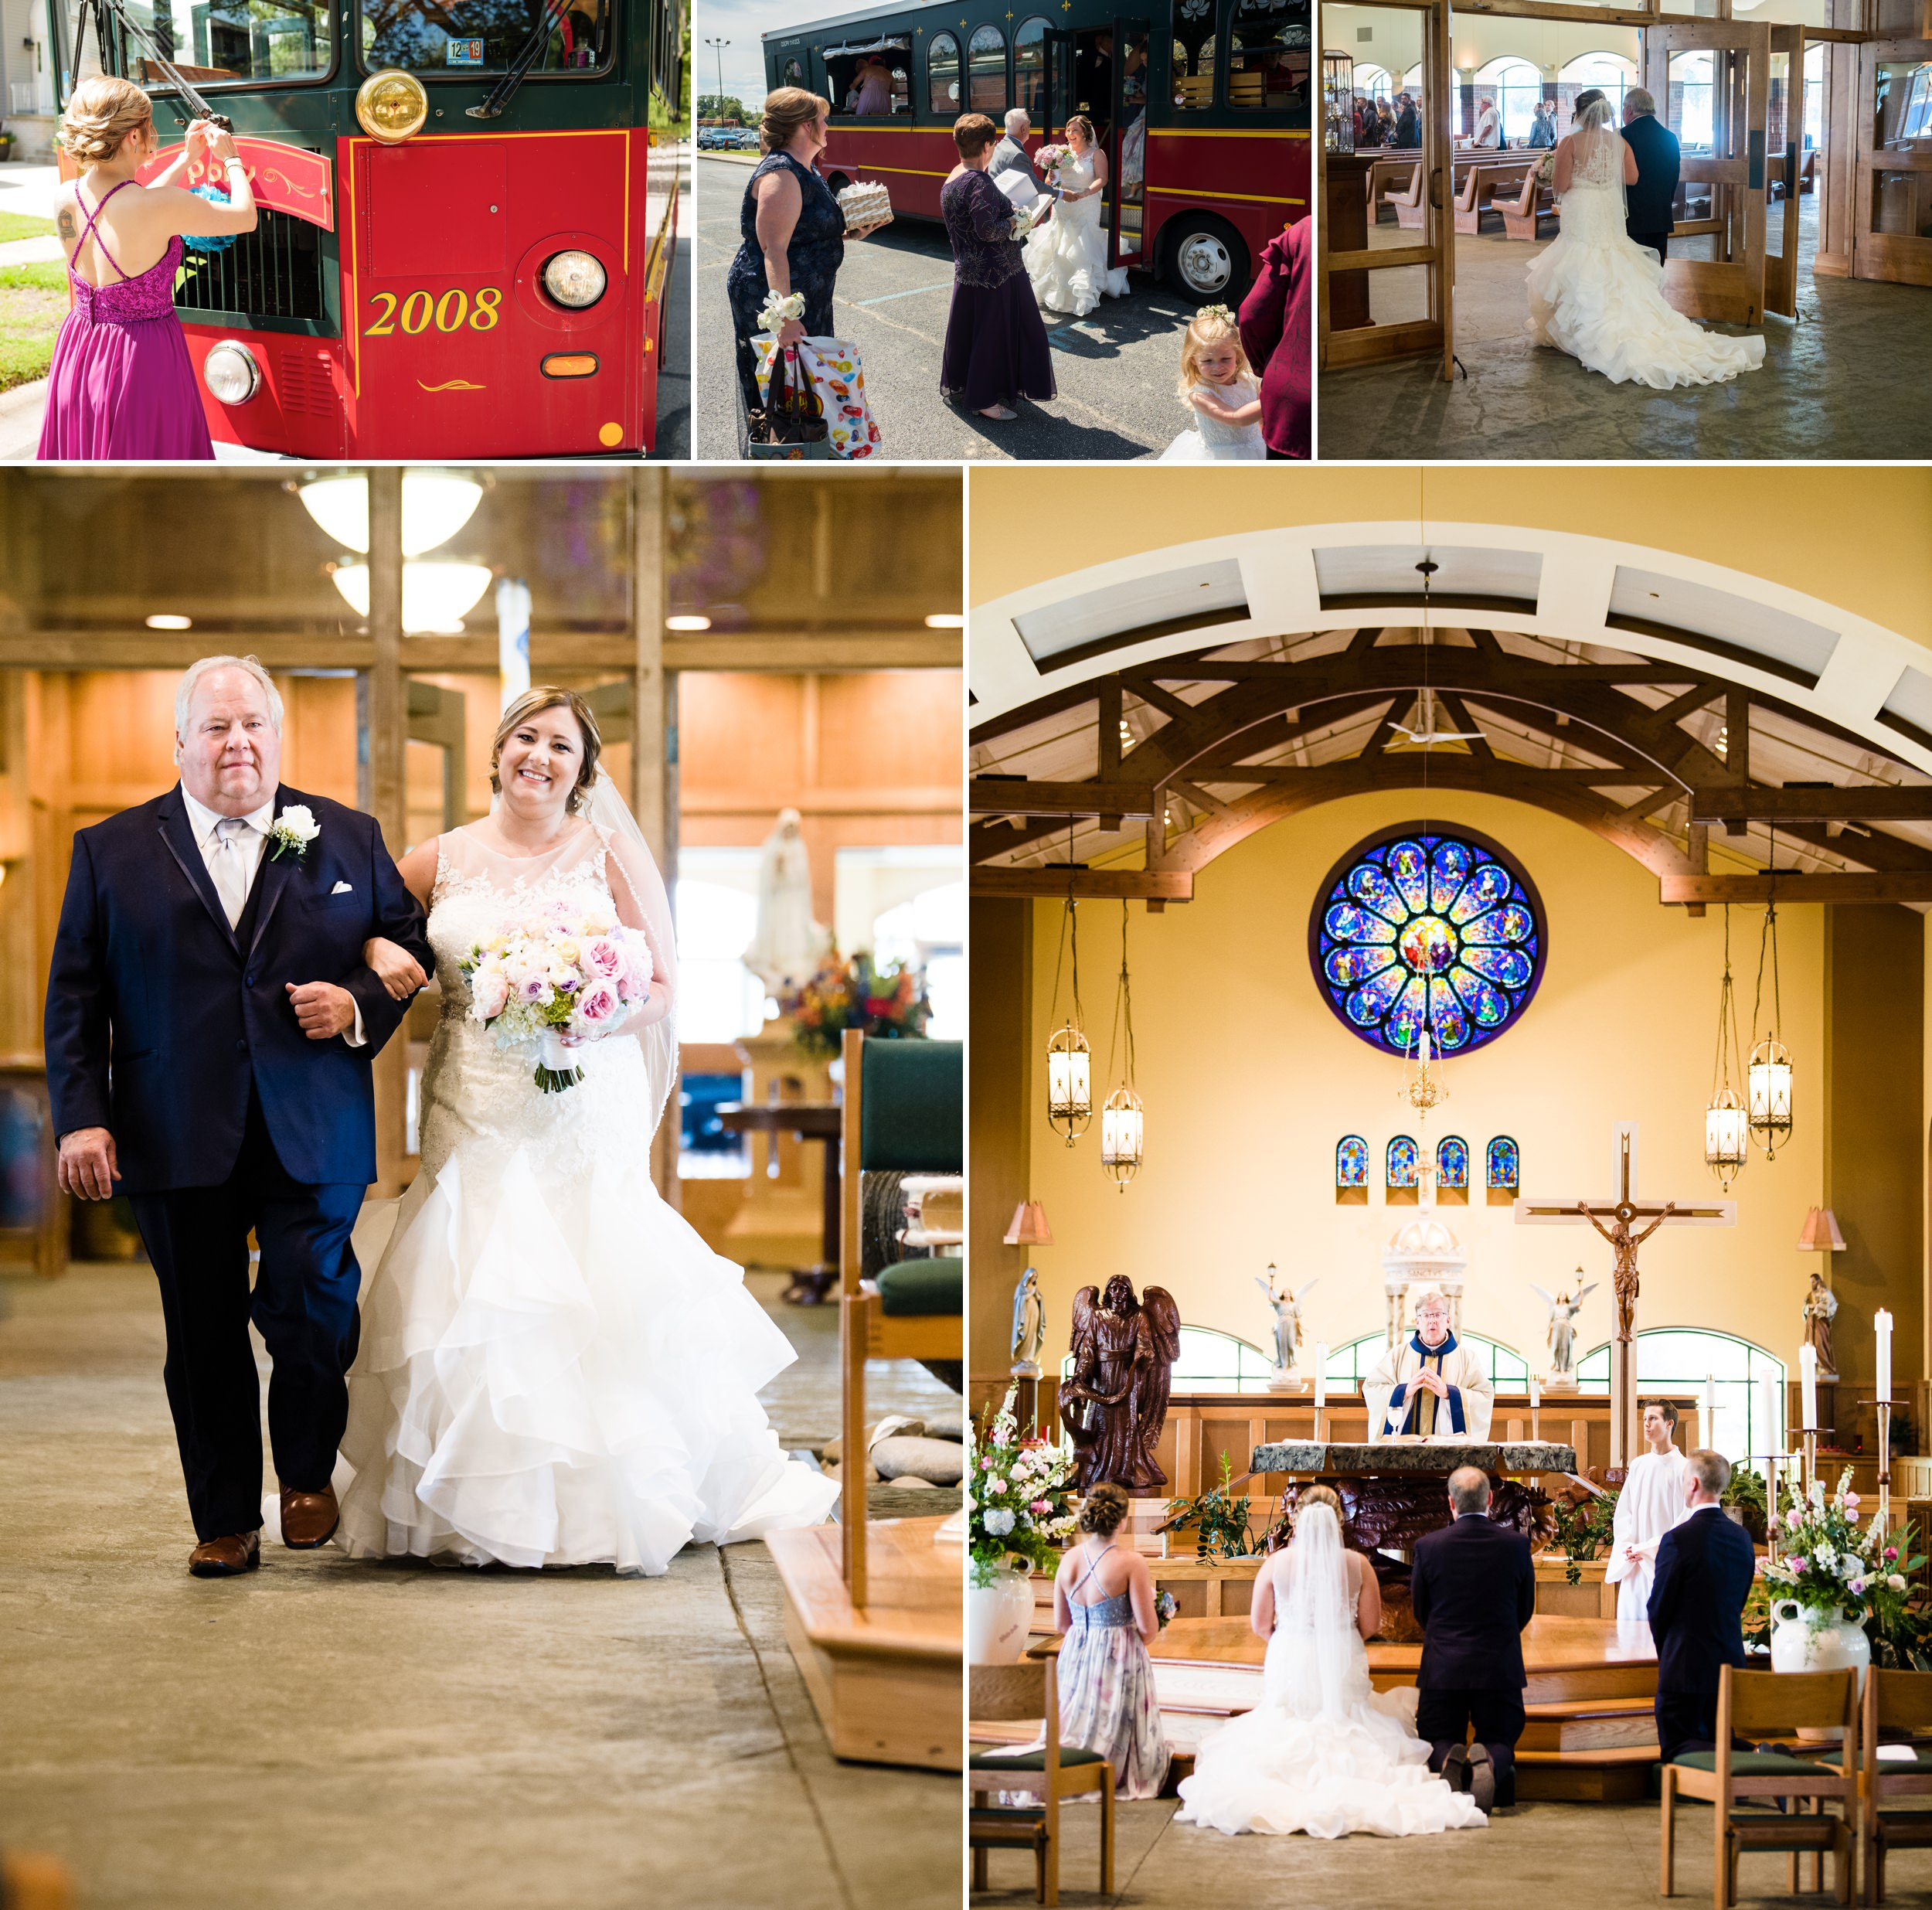 August wedding ceremony at St. Michael's Parish in Schererville, Indiana.